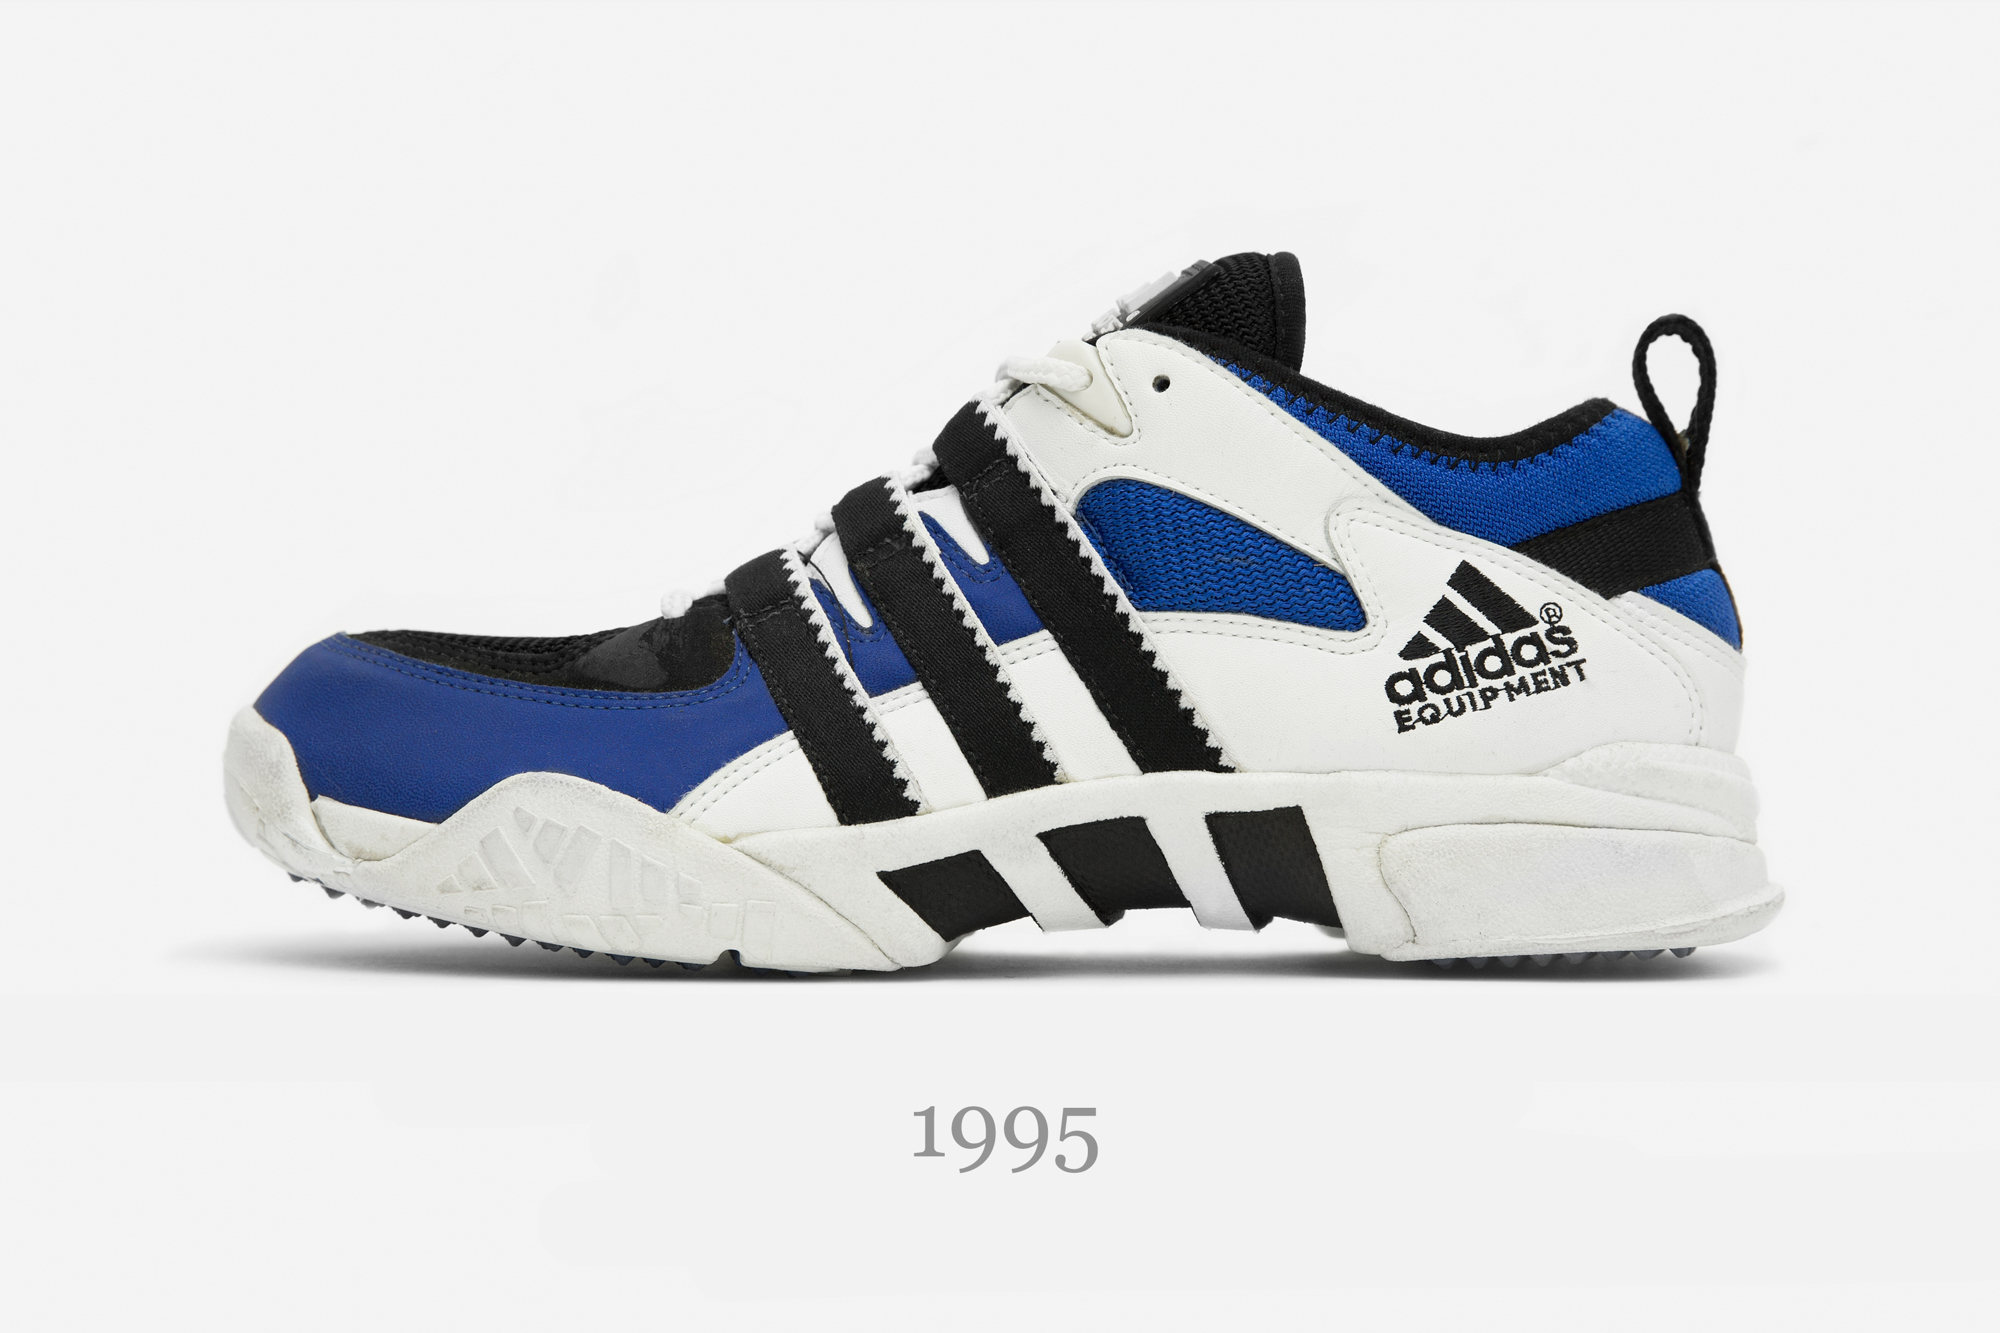 adidas_EQT_Equipment_Lock_up_size_hq_exclusive-3